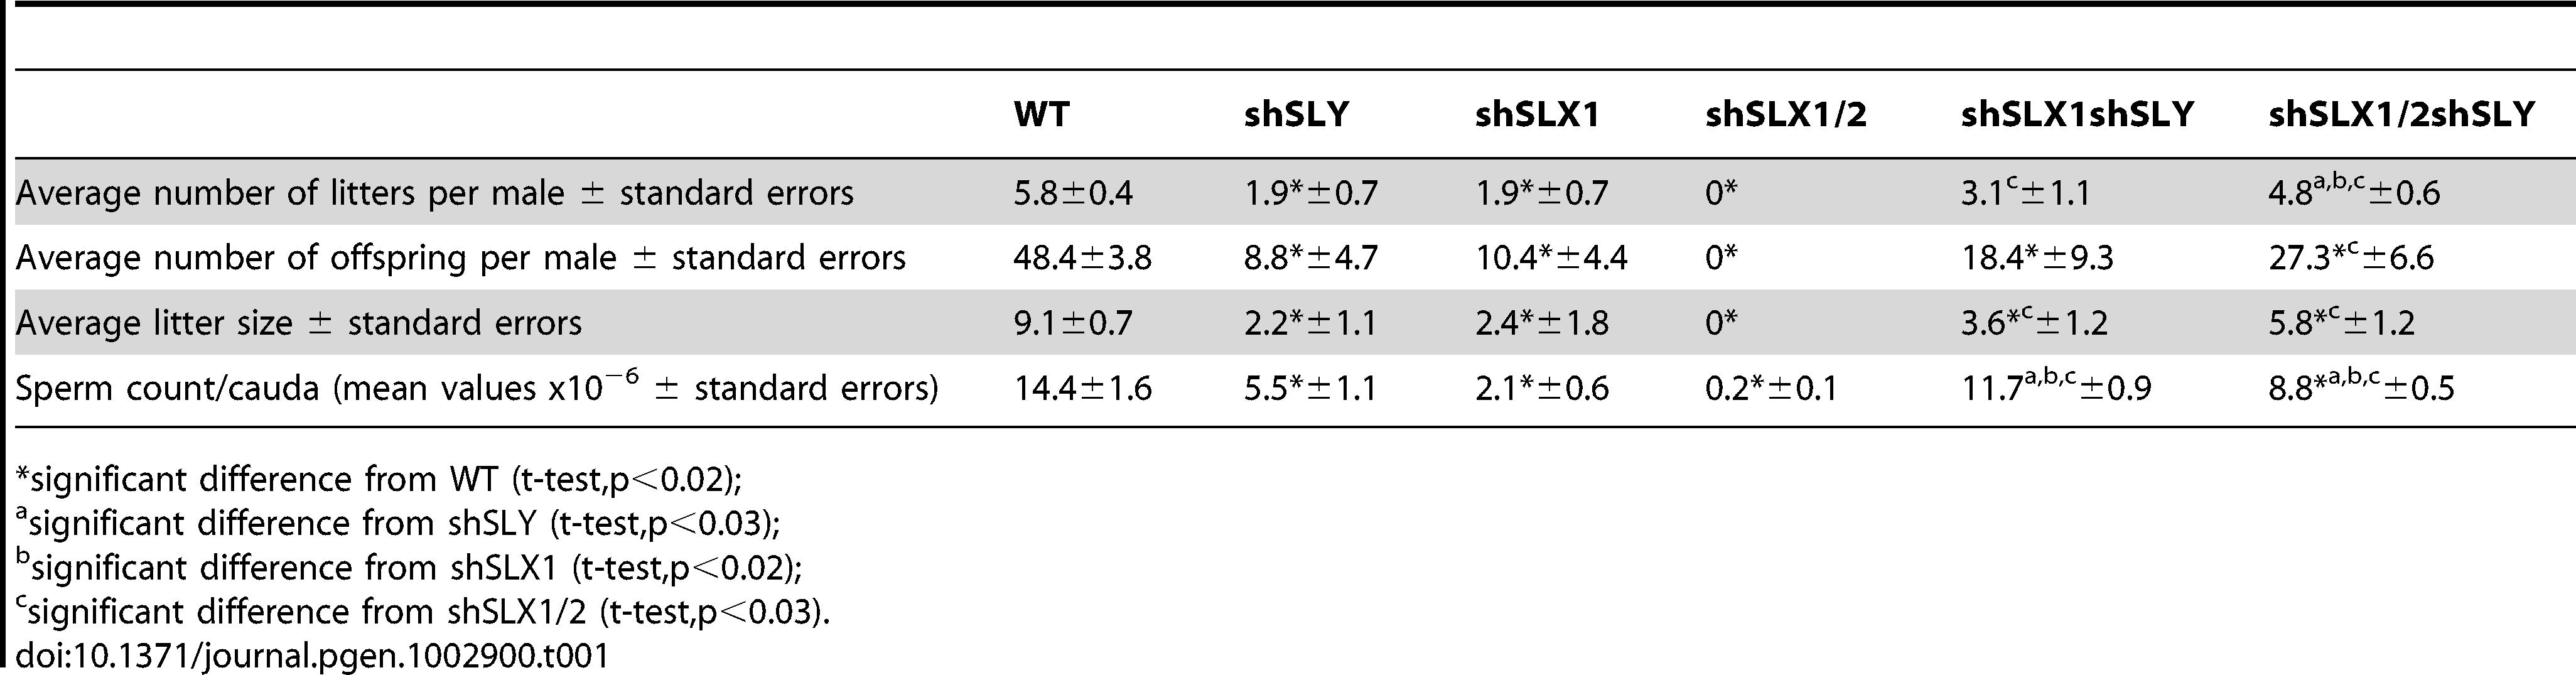 Analysis of the reproductive parameters of <i>Slx/y</i>-deficient mice compared to controls.